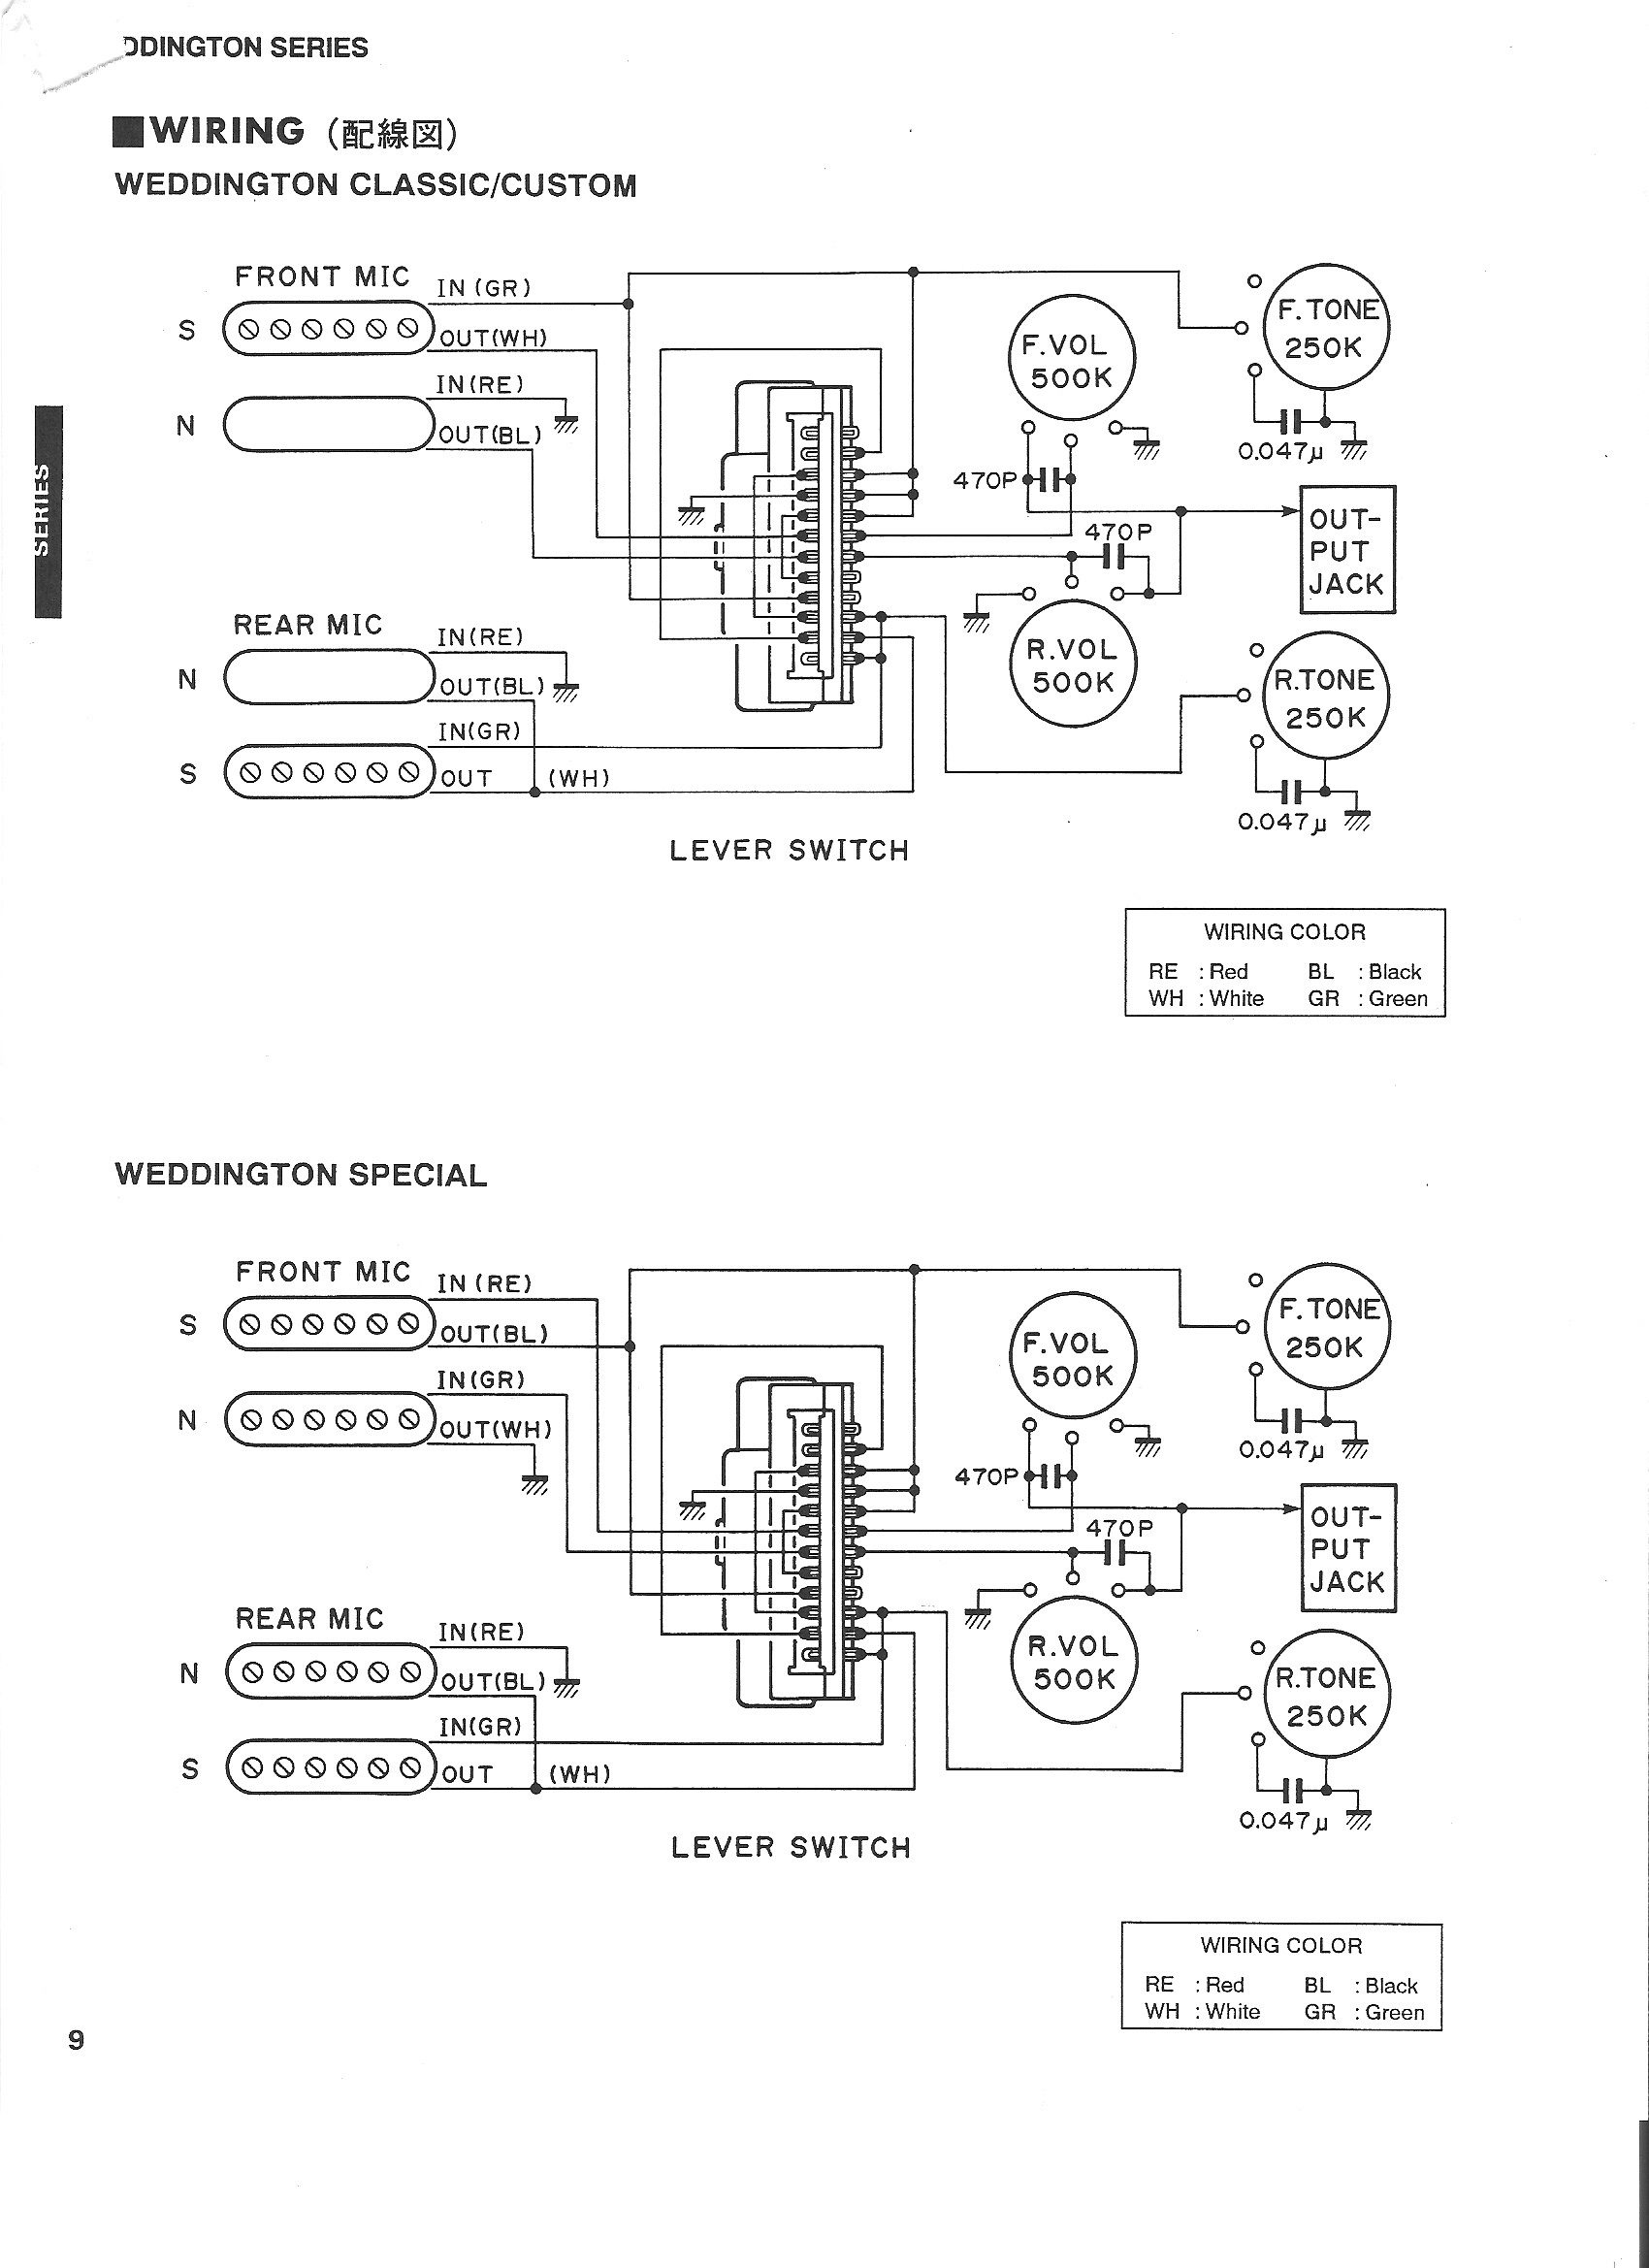 hight resolution of ibanez rs240 wiring diagram yamaha weddington classic custom wiring diagram